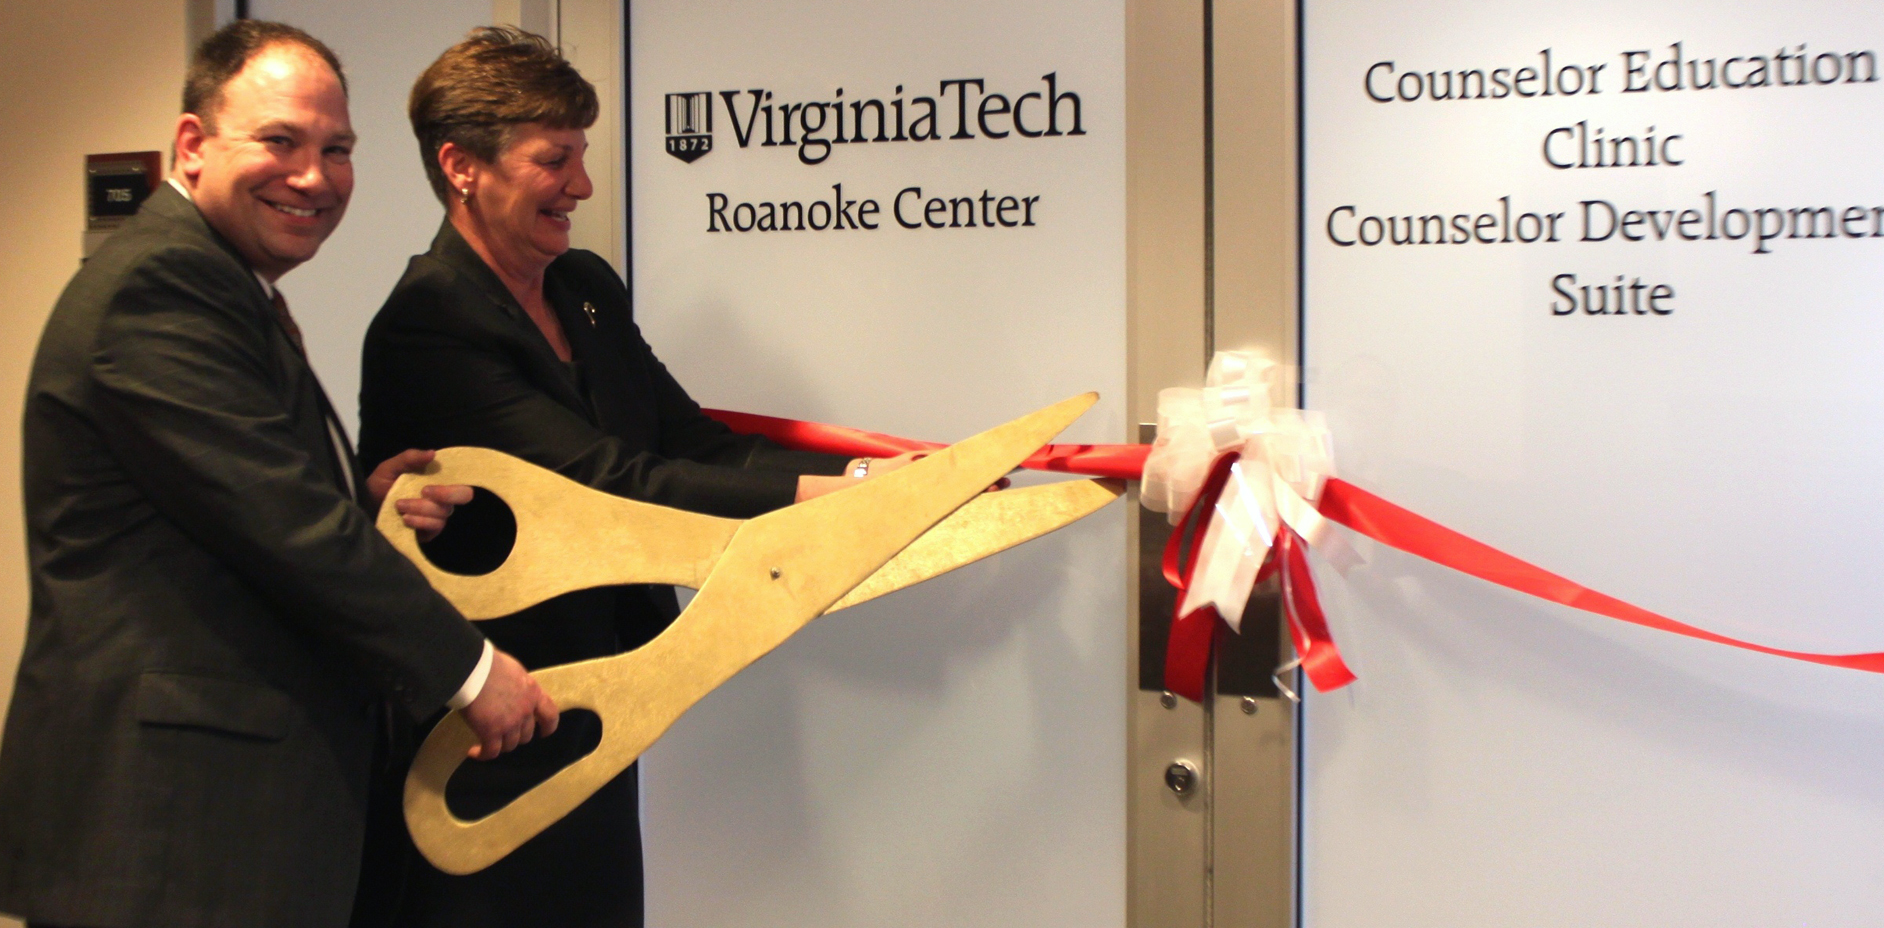 Gerard Lawson and Susan Short of Virginia Tech cut ribbon.